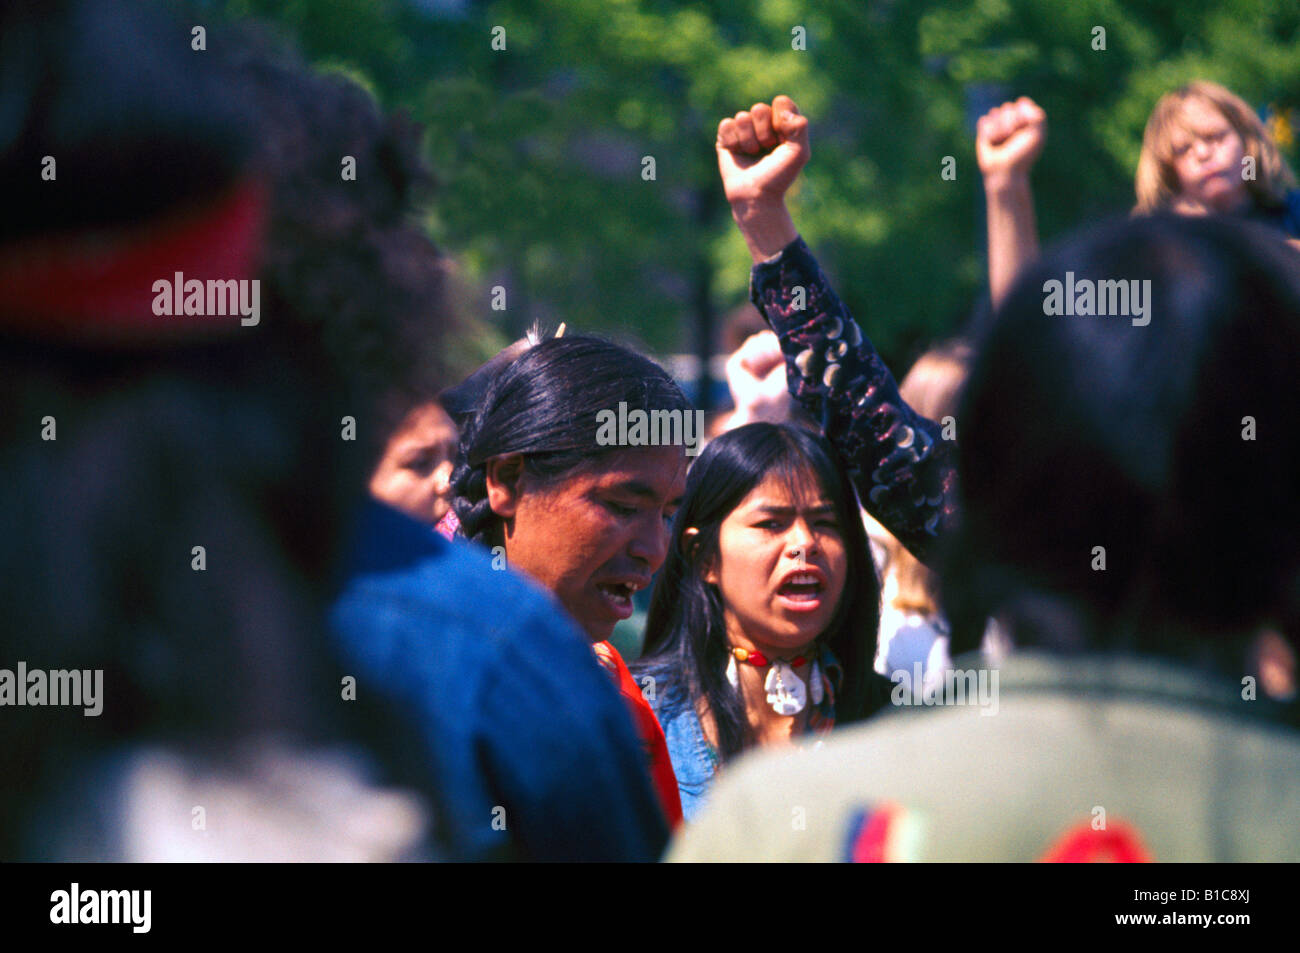 Native American Indians, First Nations, Protest Demonstration, Protesters and Demonstrators with Raised Fist in Stock Photo